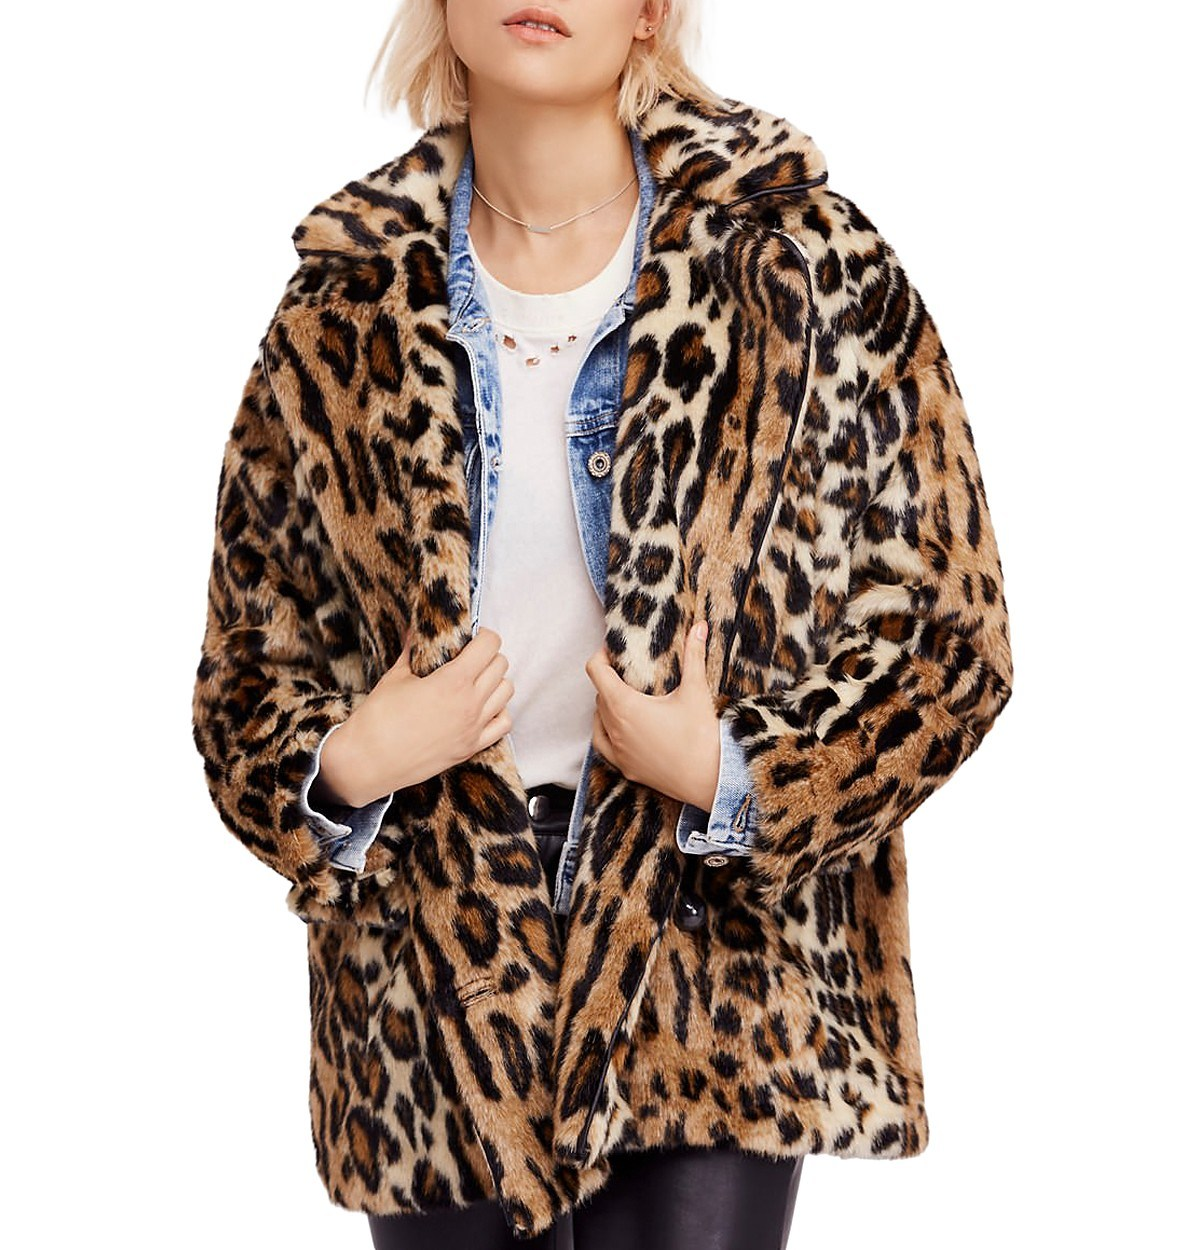 493ee2664a7ee Faux Fur Leopard Coat Winter Jackets with Customers Own Designs Wholesale